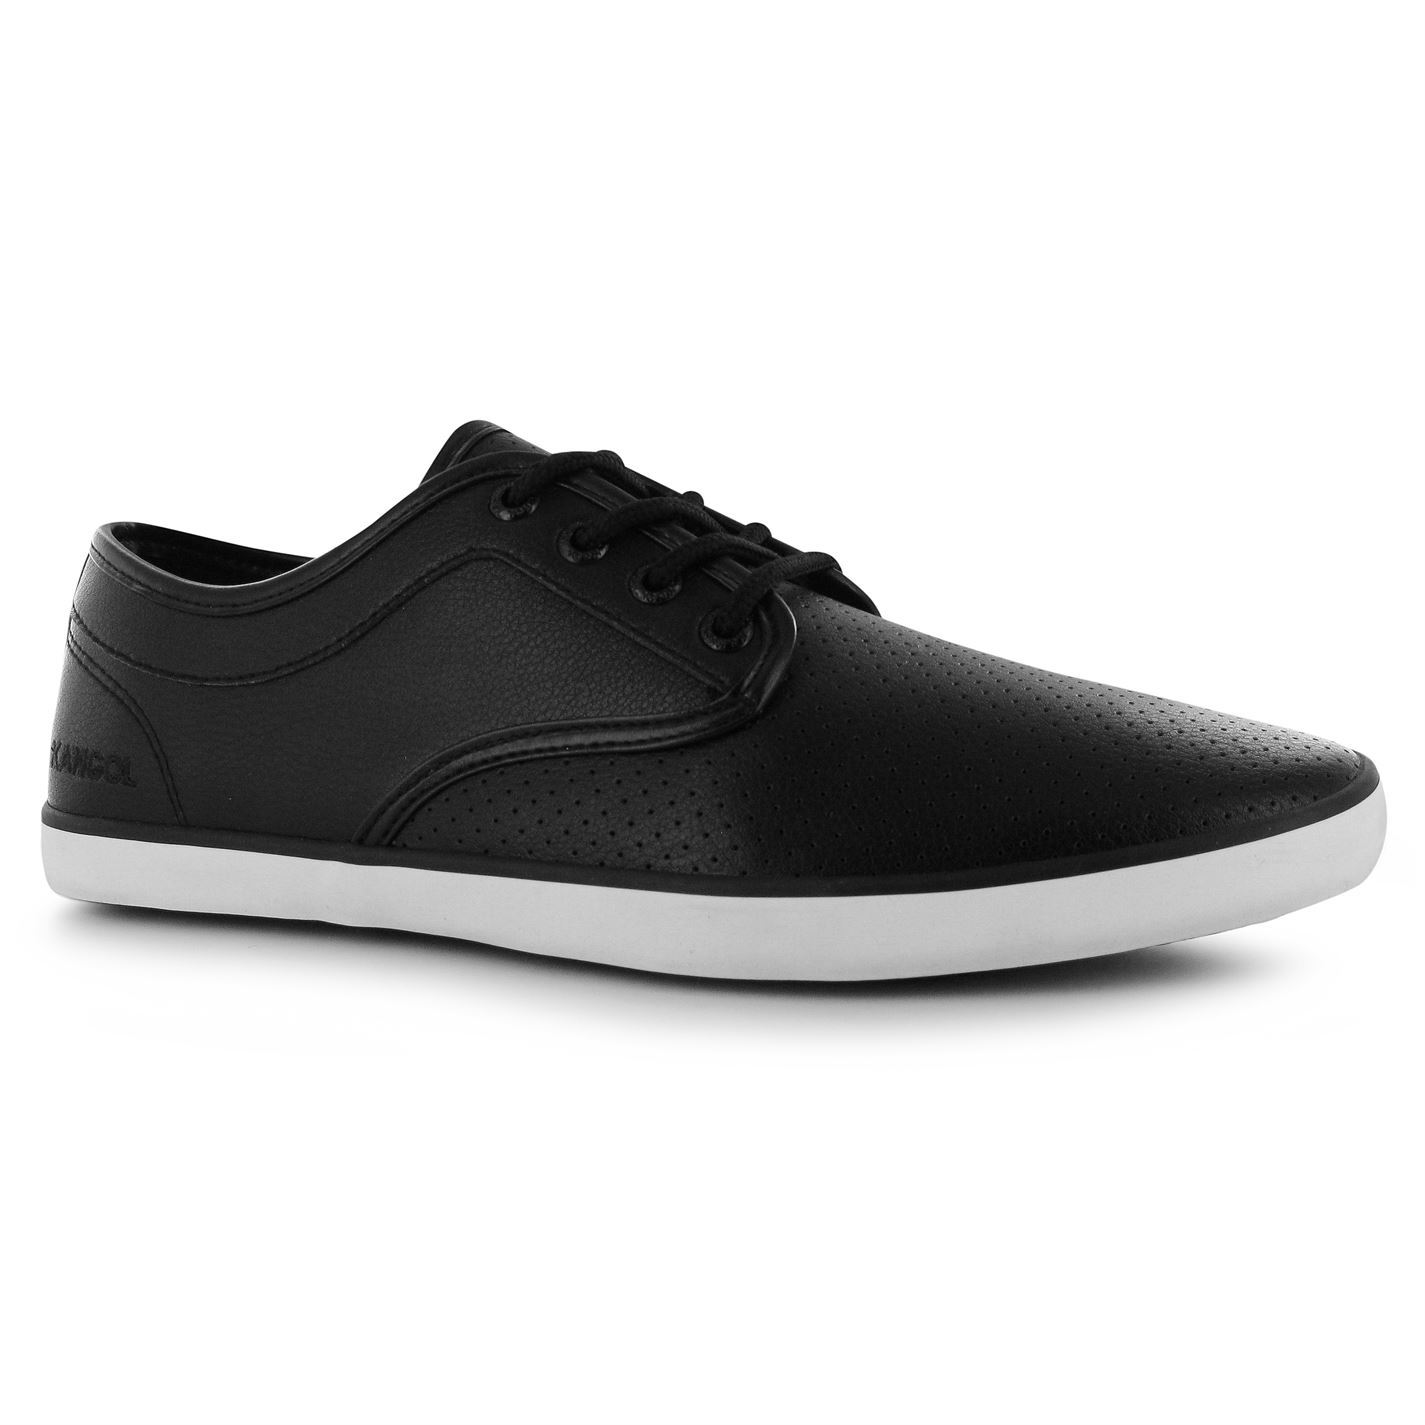 Clothing shoes amp accessories gt men s shoes gt casual